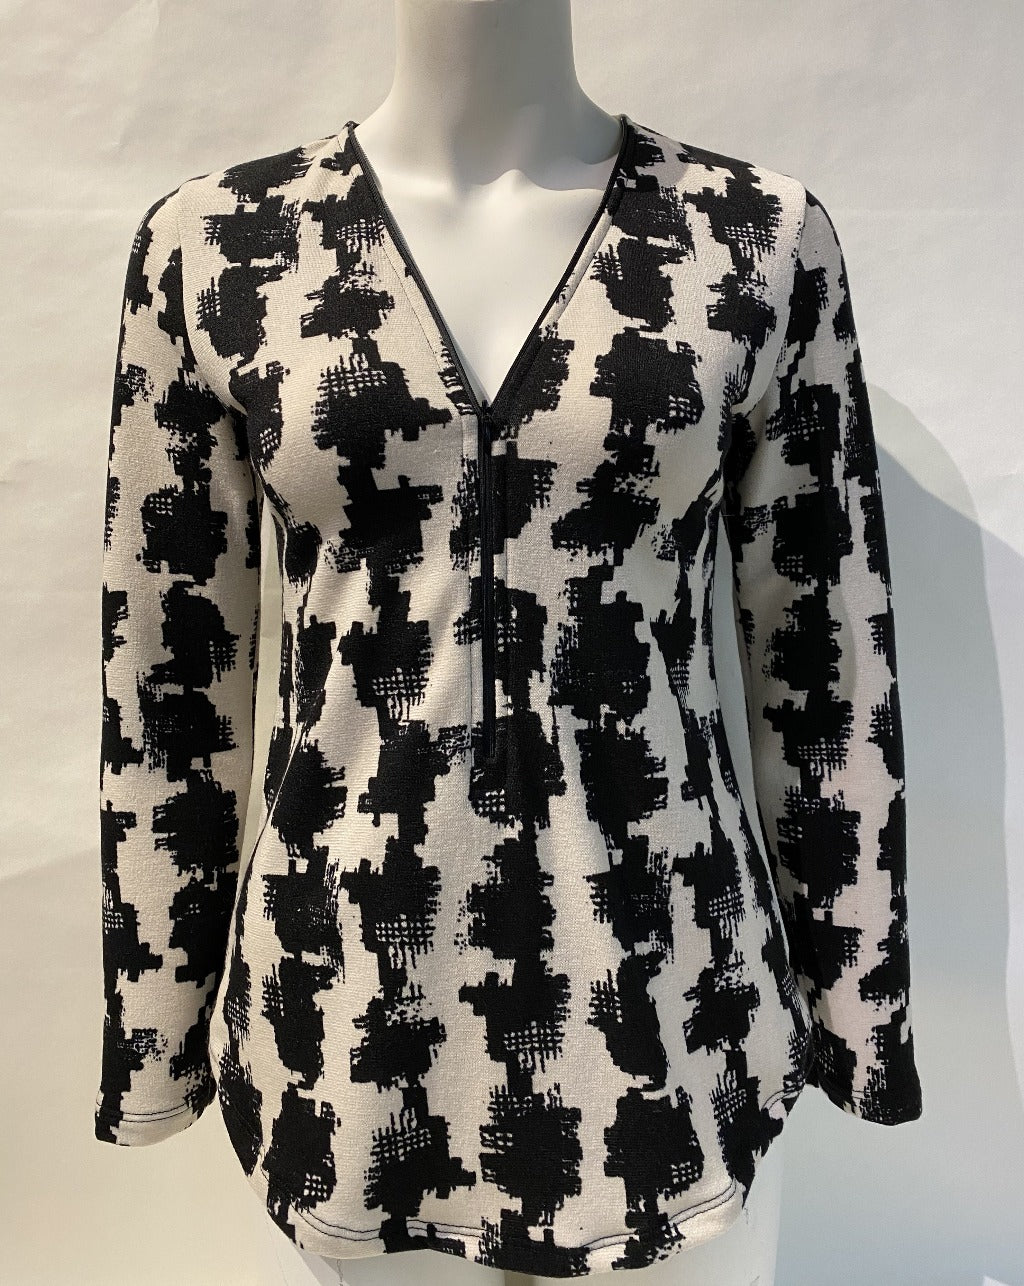 ULTIMATE ZIP HOUNDSTOOTH PRINT top